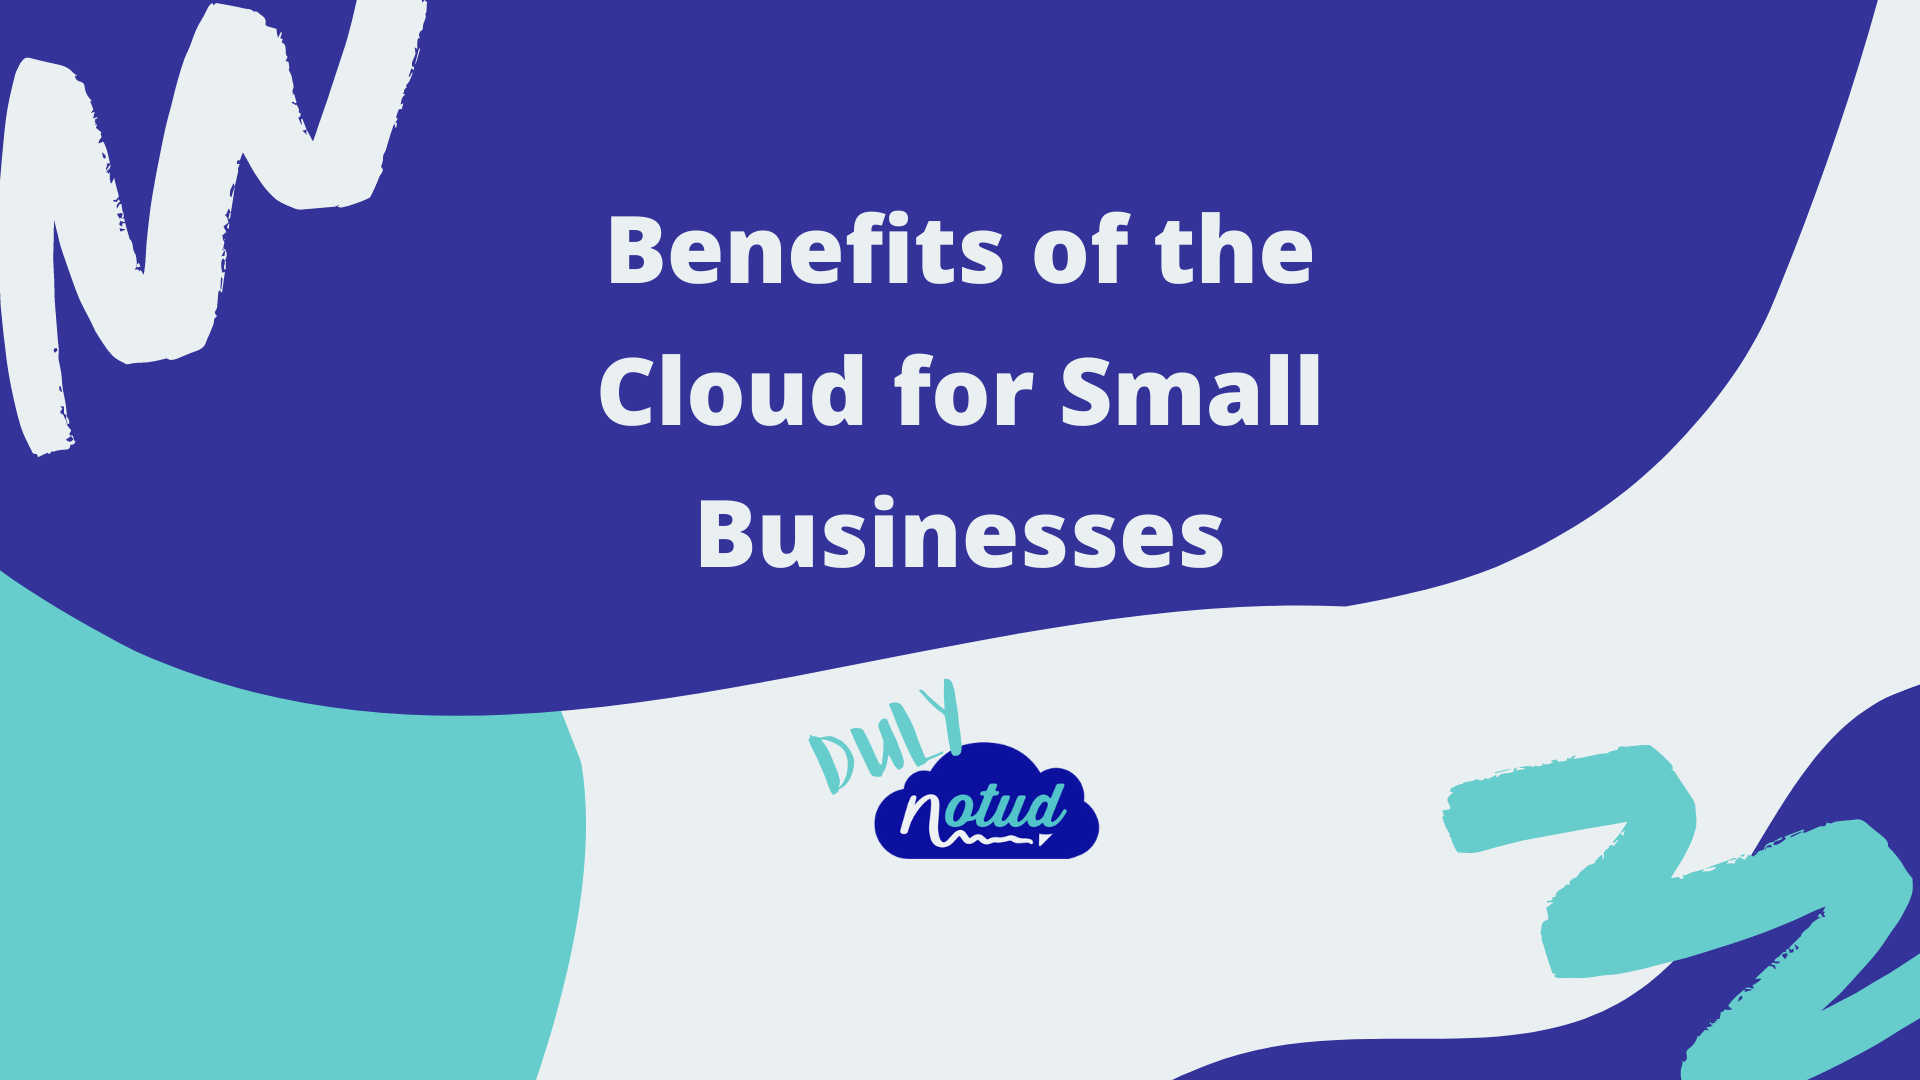 Duly Notud blog - benefits of the cloud for small businesses